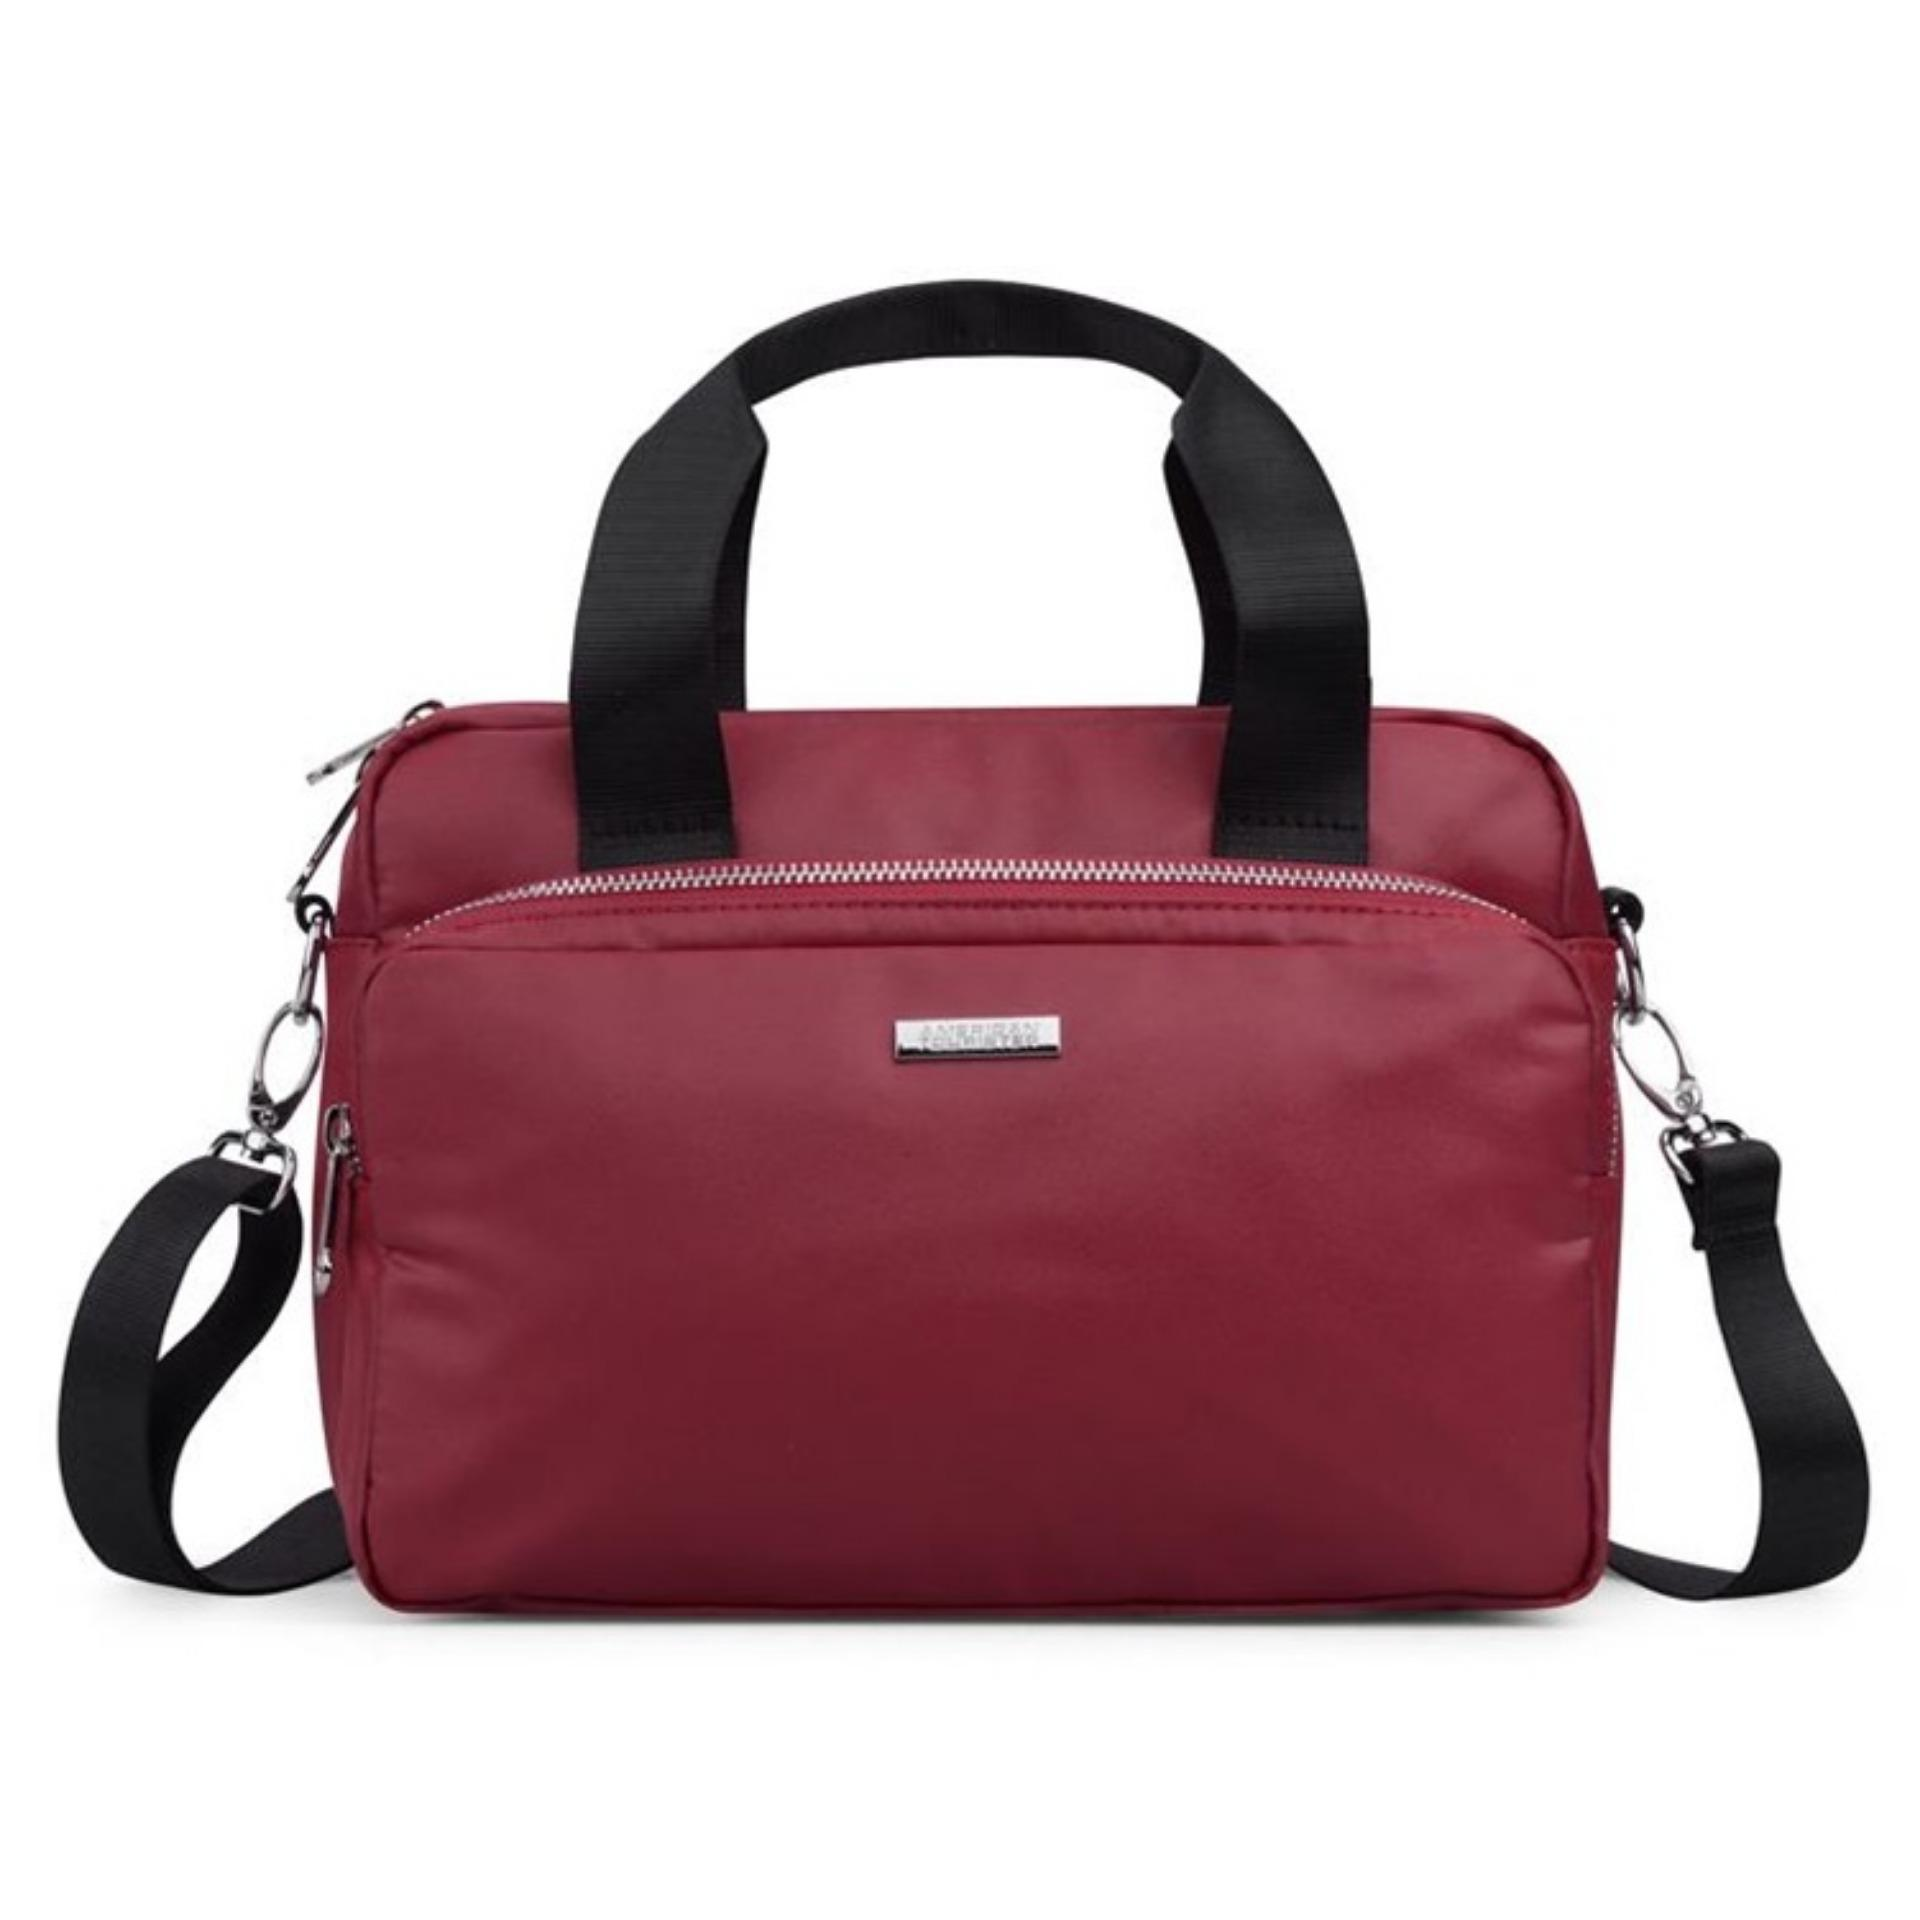 Compare American Tourister Halo Shoulder Bag M Burgundy Prices